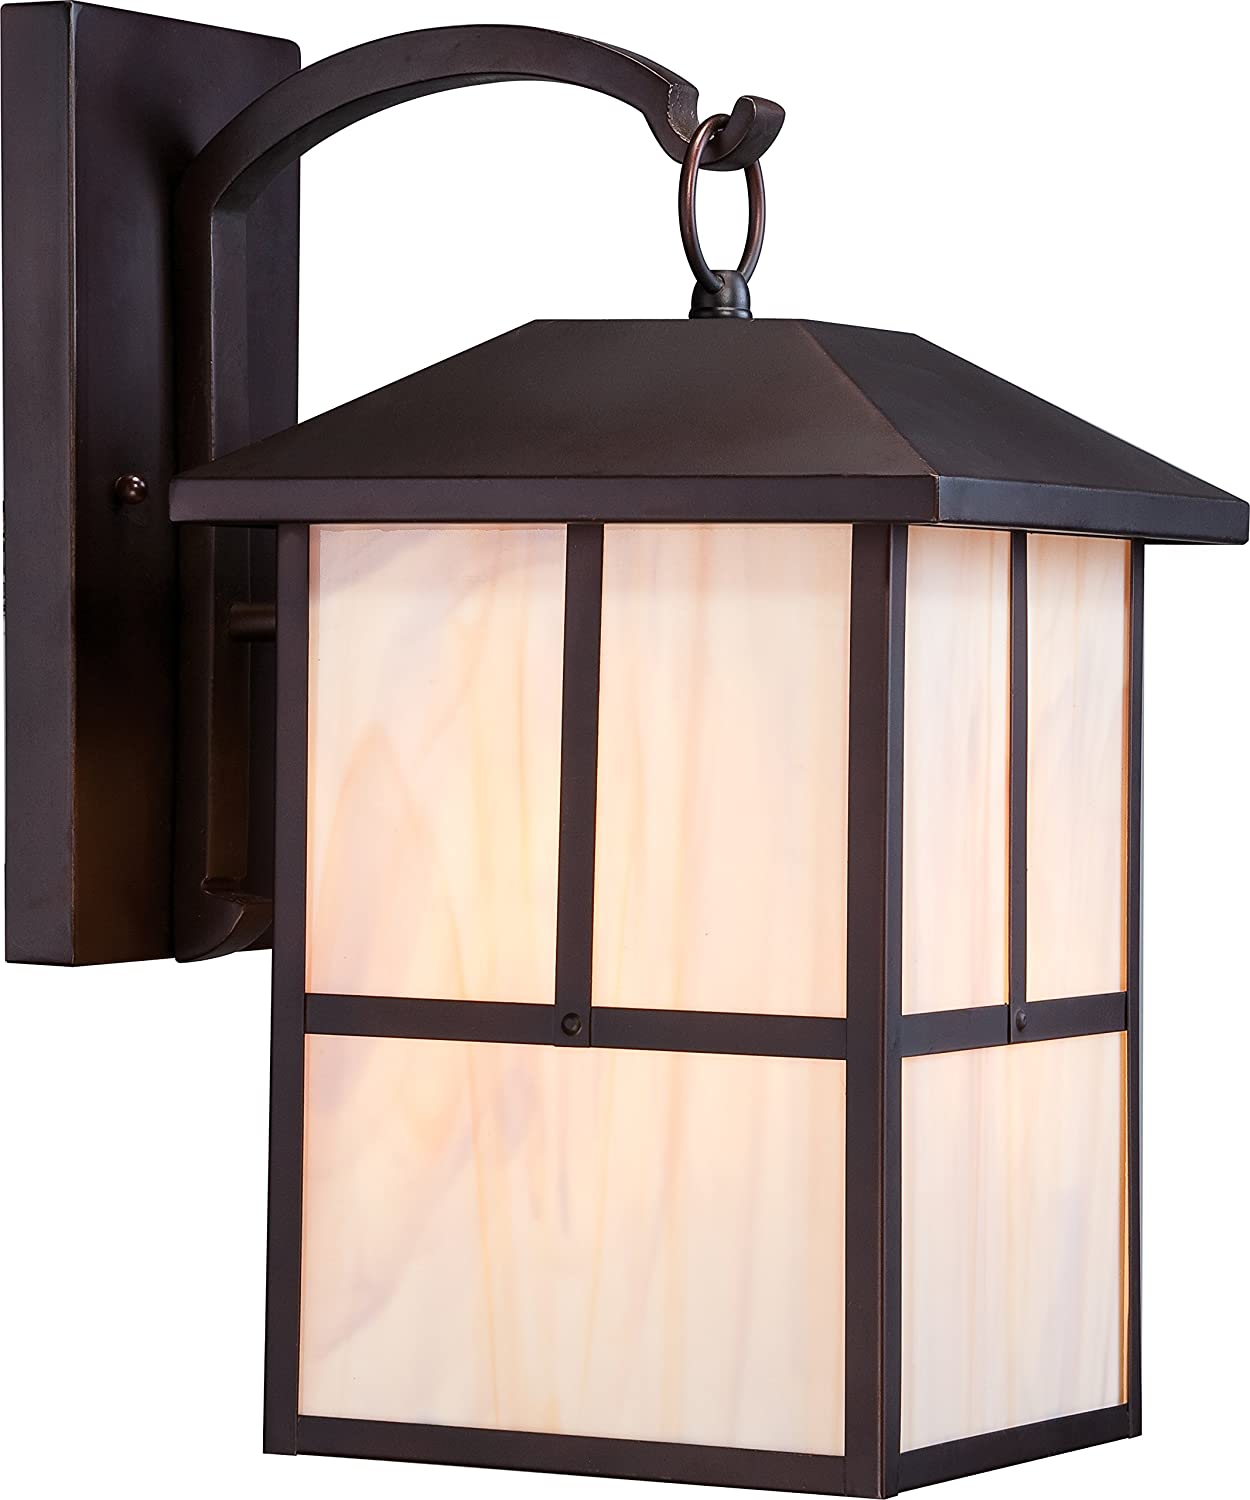 Claret Bronze Nuvo Lighting 60//5672 Tanner Medium One Light Wall Lantern 100-watt A19 Outdoor Porch and Patio Lighting with Honey Stained Glass